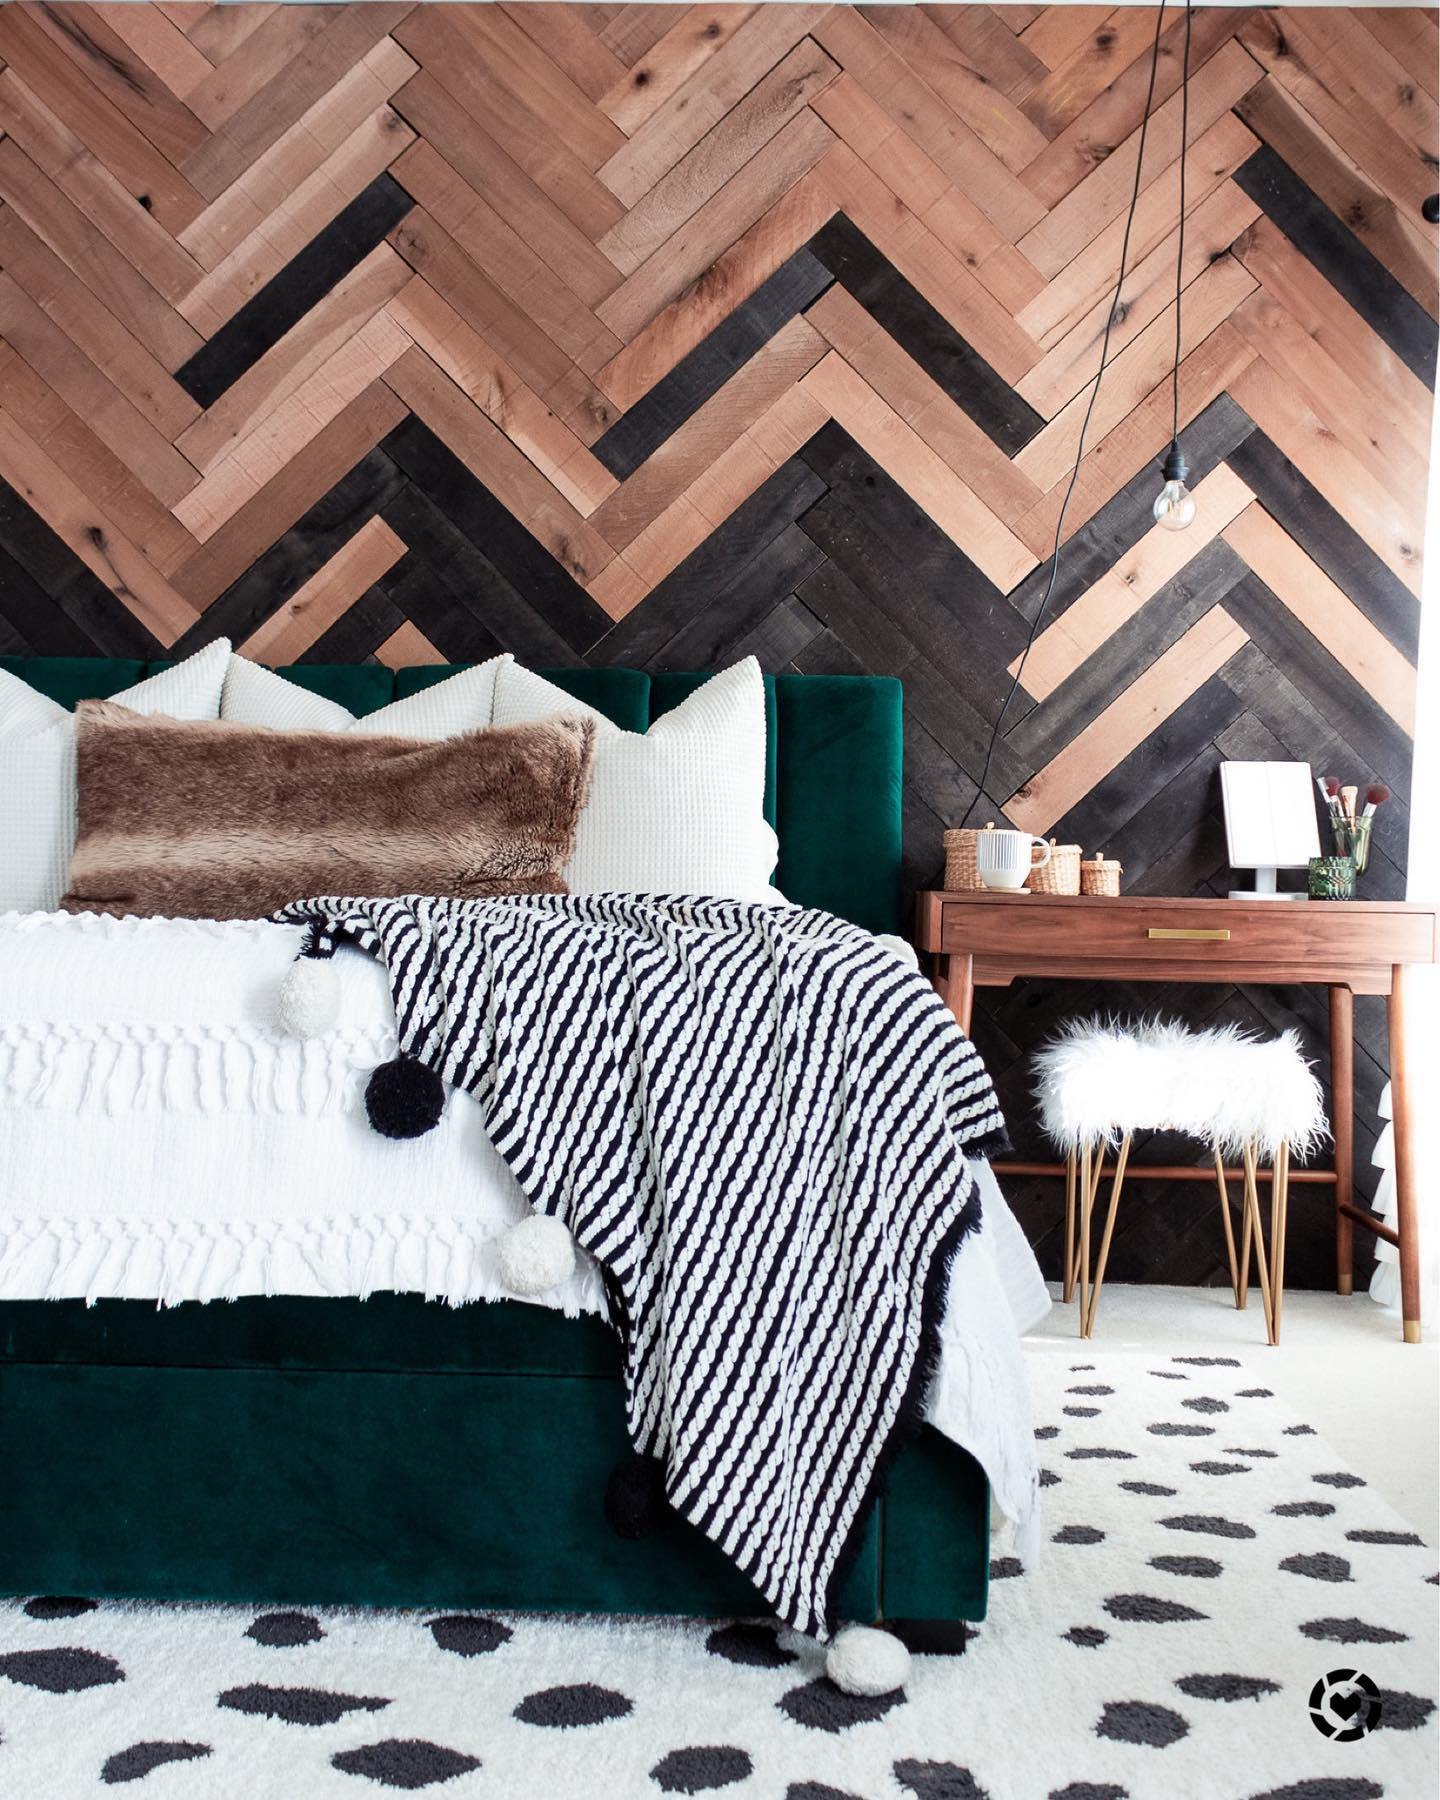 Bedroom Pallet Wall Ideas -fromgrittopearl